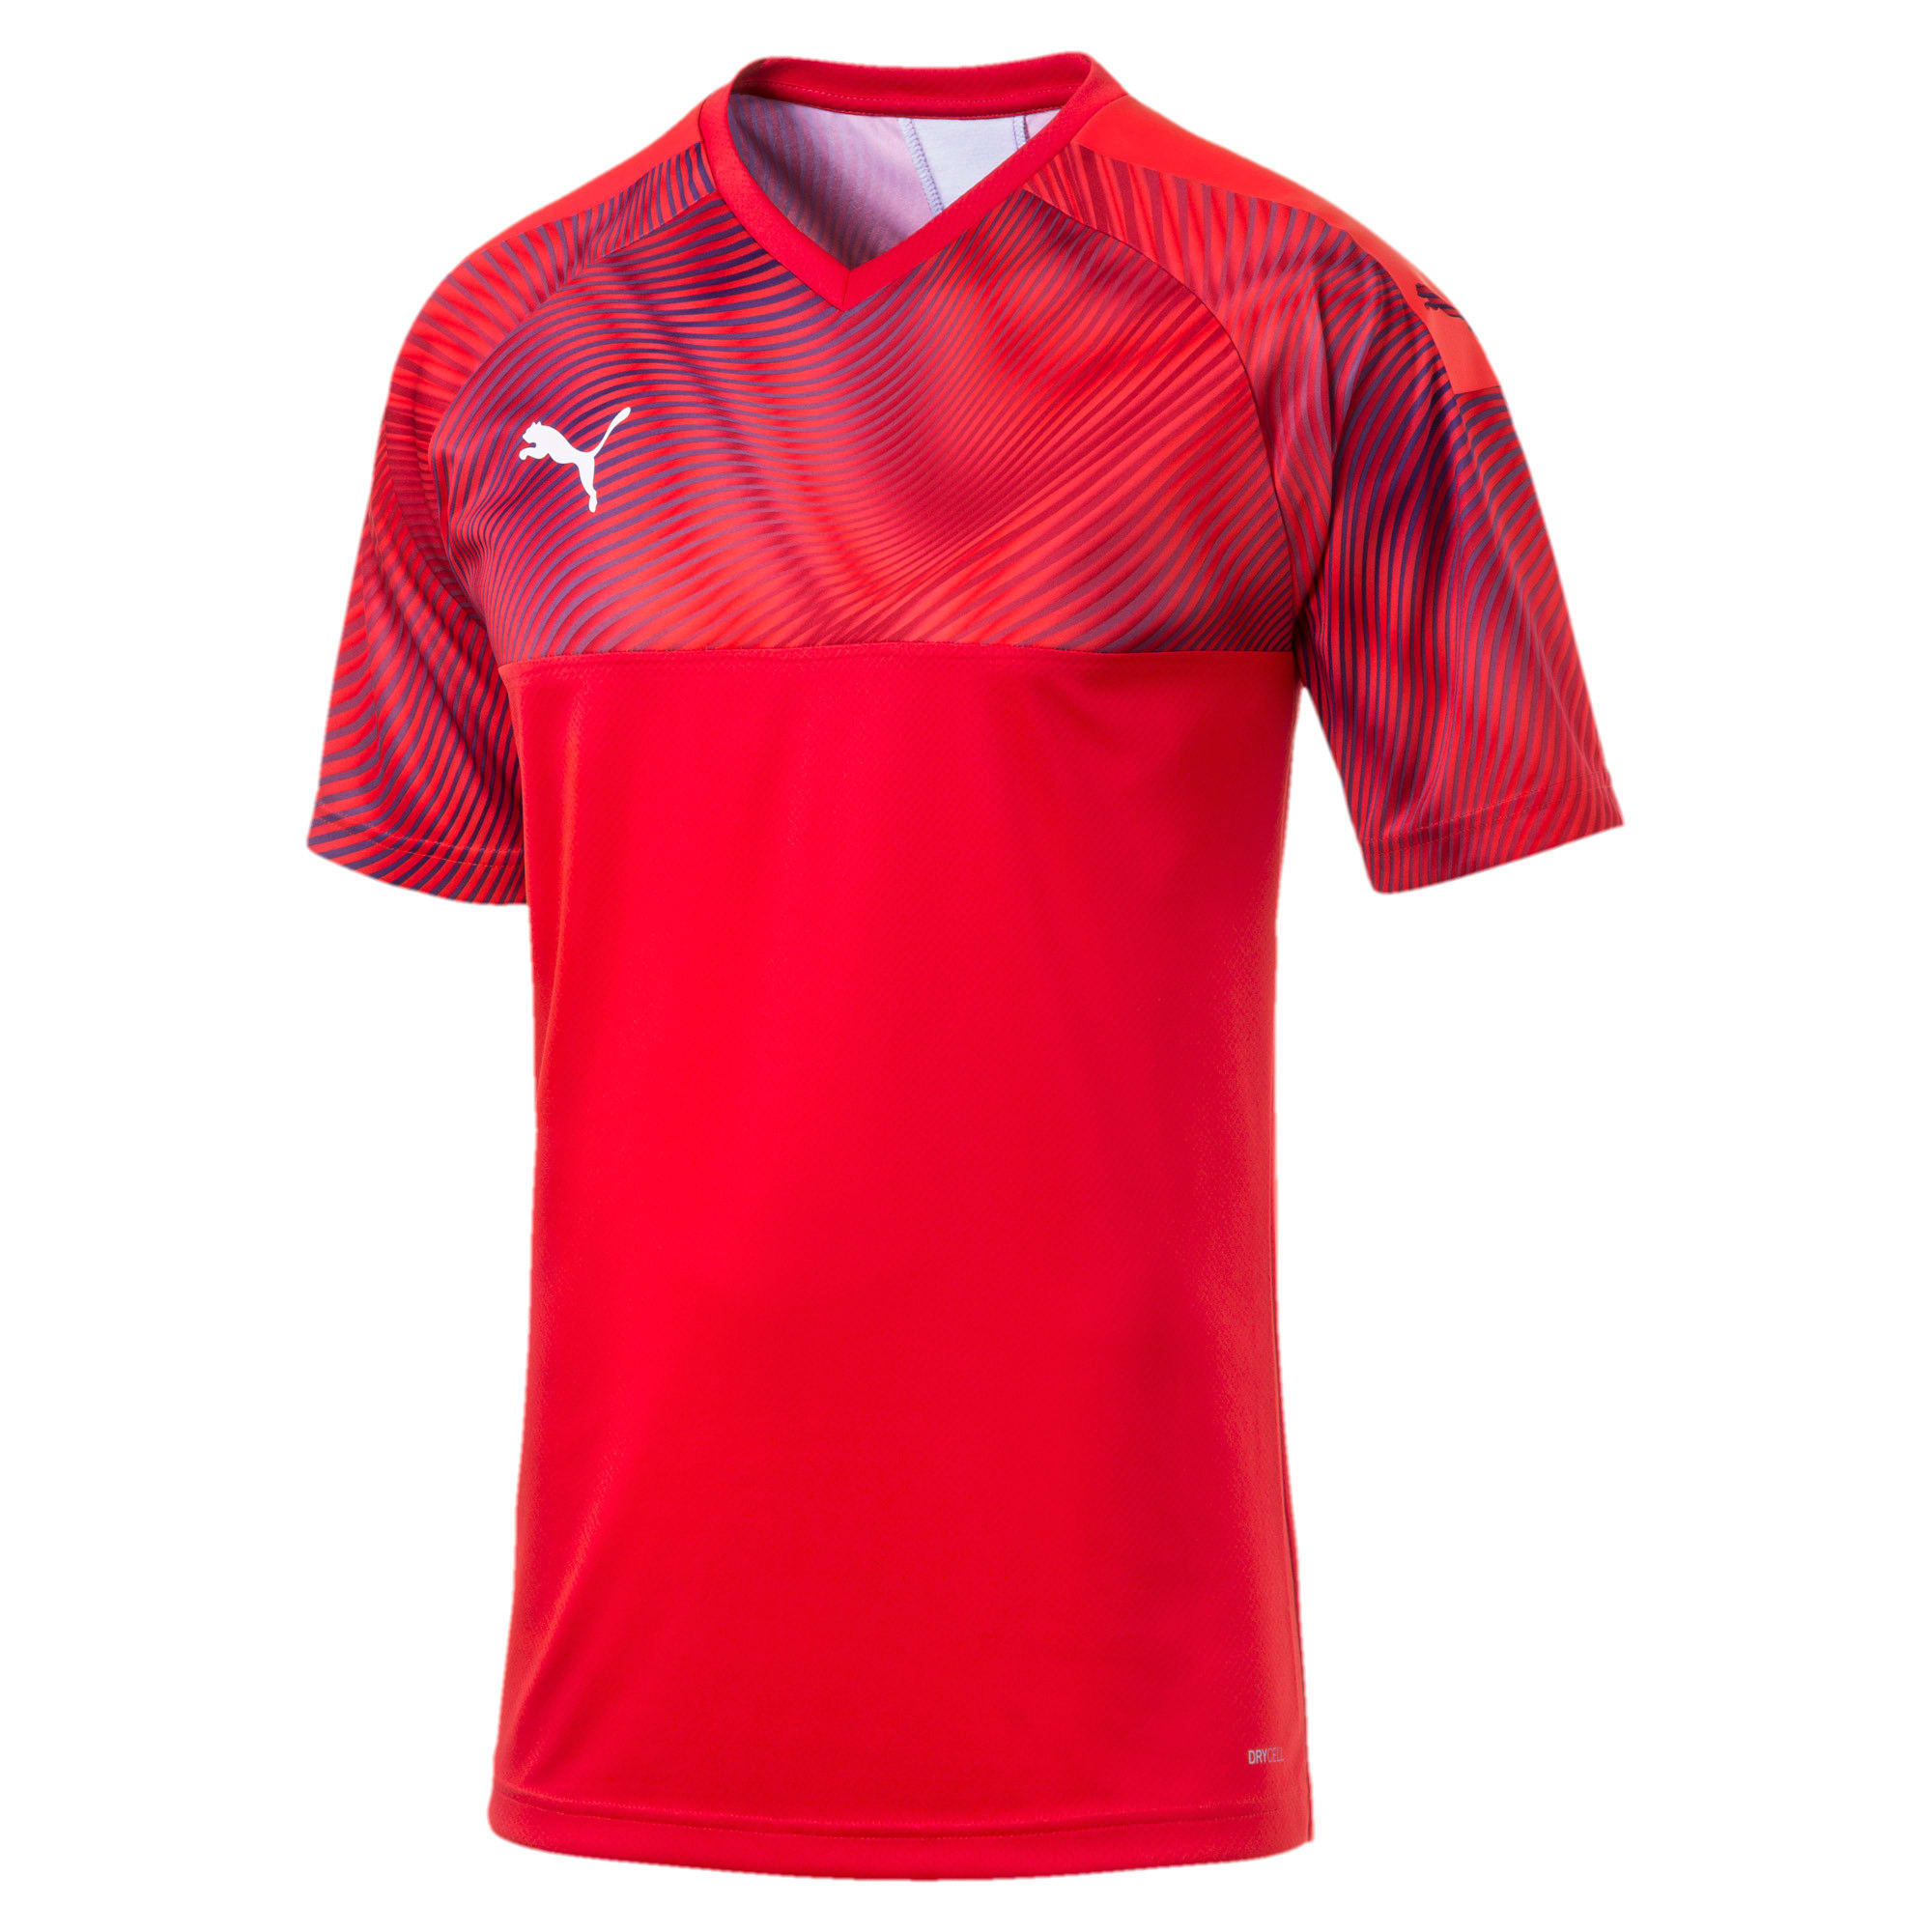 Thumbnail 4 of CUP Men's Football Jersey, Puma Red-Puma White, medium